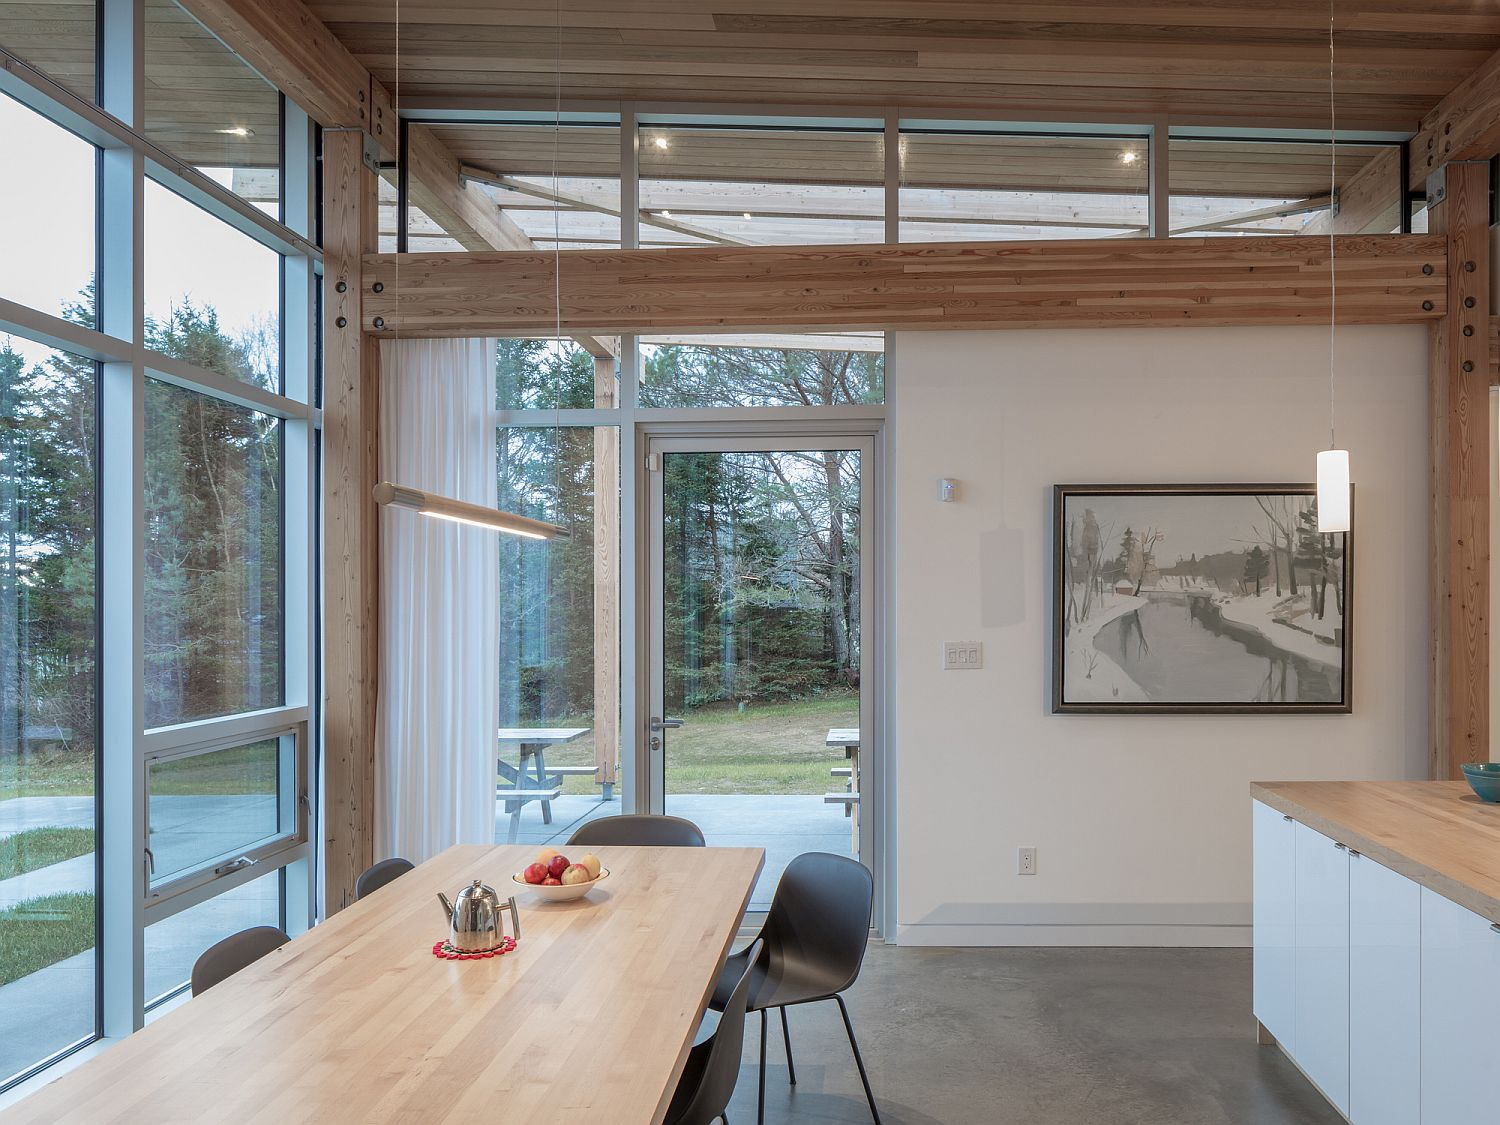 Kitchen and dining area of House in Scotch Cove